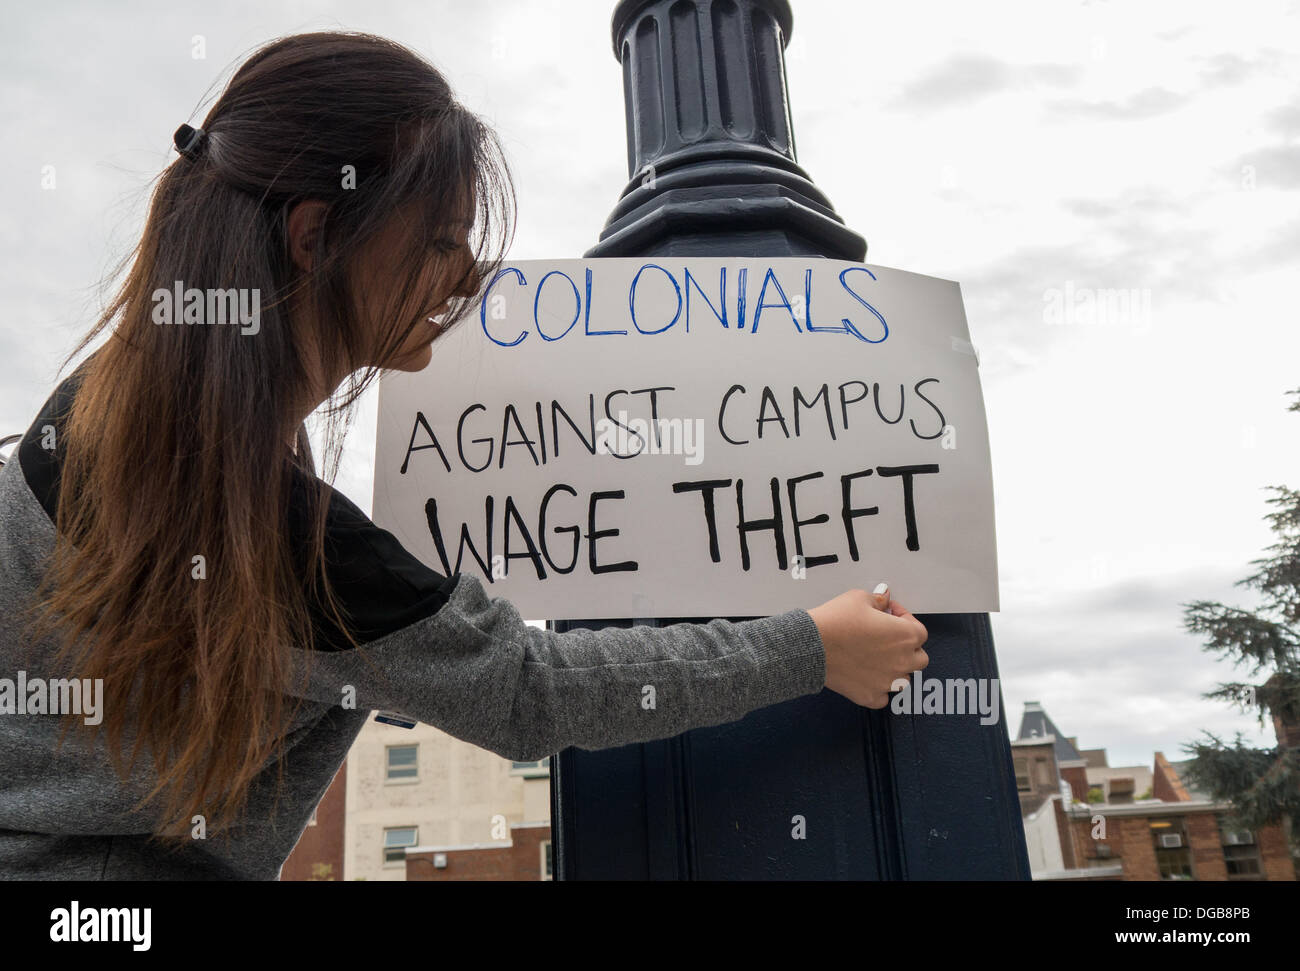 George Washington University students, workers and employees protest alleged wage theft by private contractors on their campus. Protesters marched on campus and delivered a list of demands to university administrators. Credit:  Ann Little/Alamy Live News - Stock Image